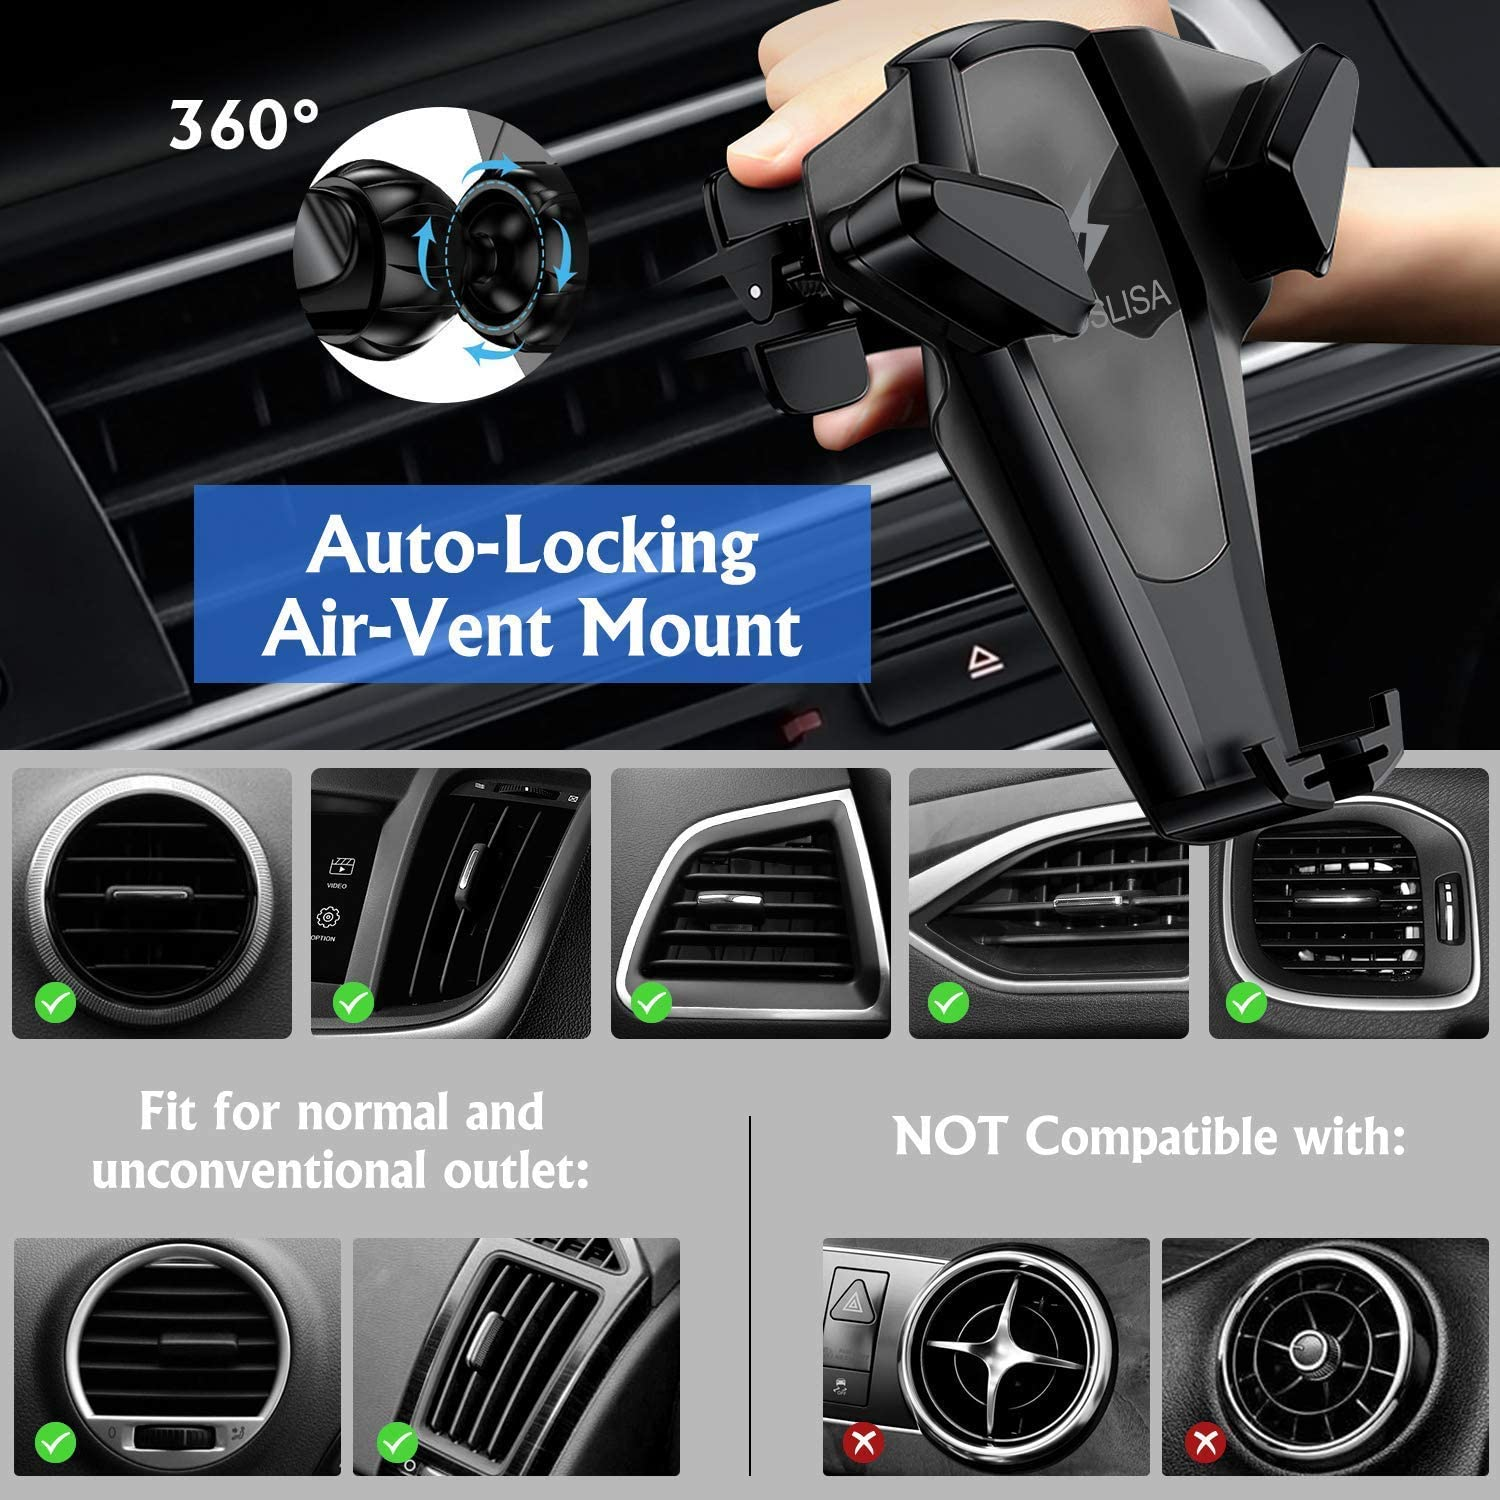 Compatible with iPhone Xs MAX//Xs//XR//X//8Plus//8 Compatible with S10Plus//S10//S9Plus//S9//S8Plus//S8 etc. Air Vent Phone Holder Gorilla Gadgets Wireless Car Charger Car Mount 10W Qi Fast Charging